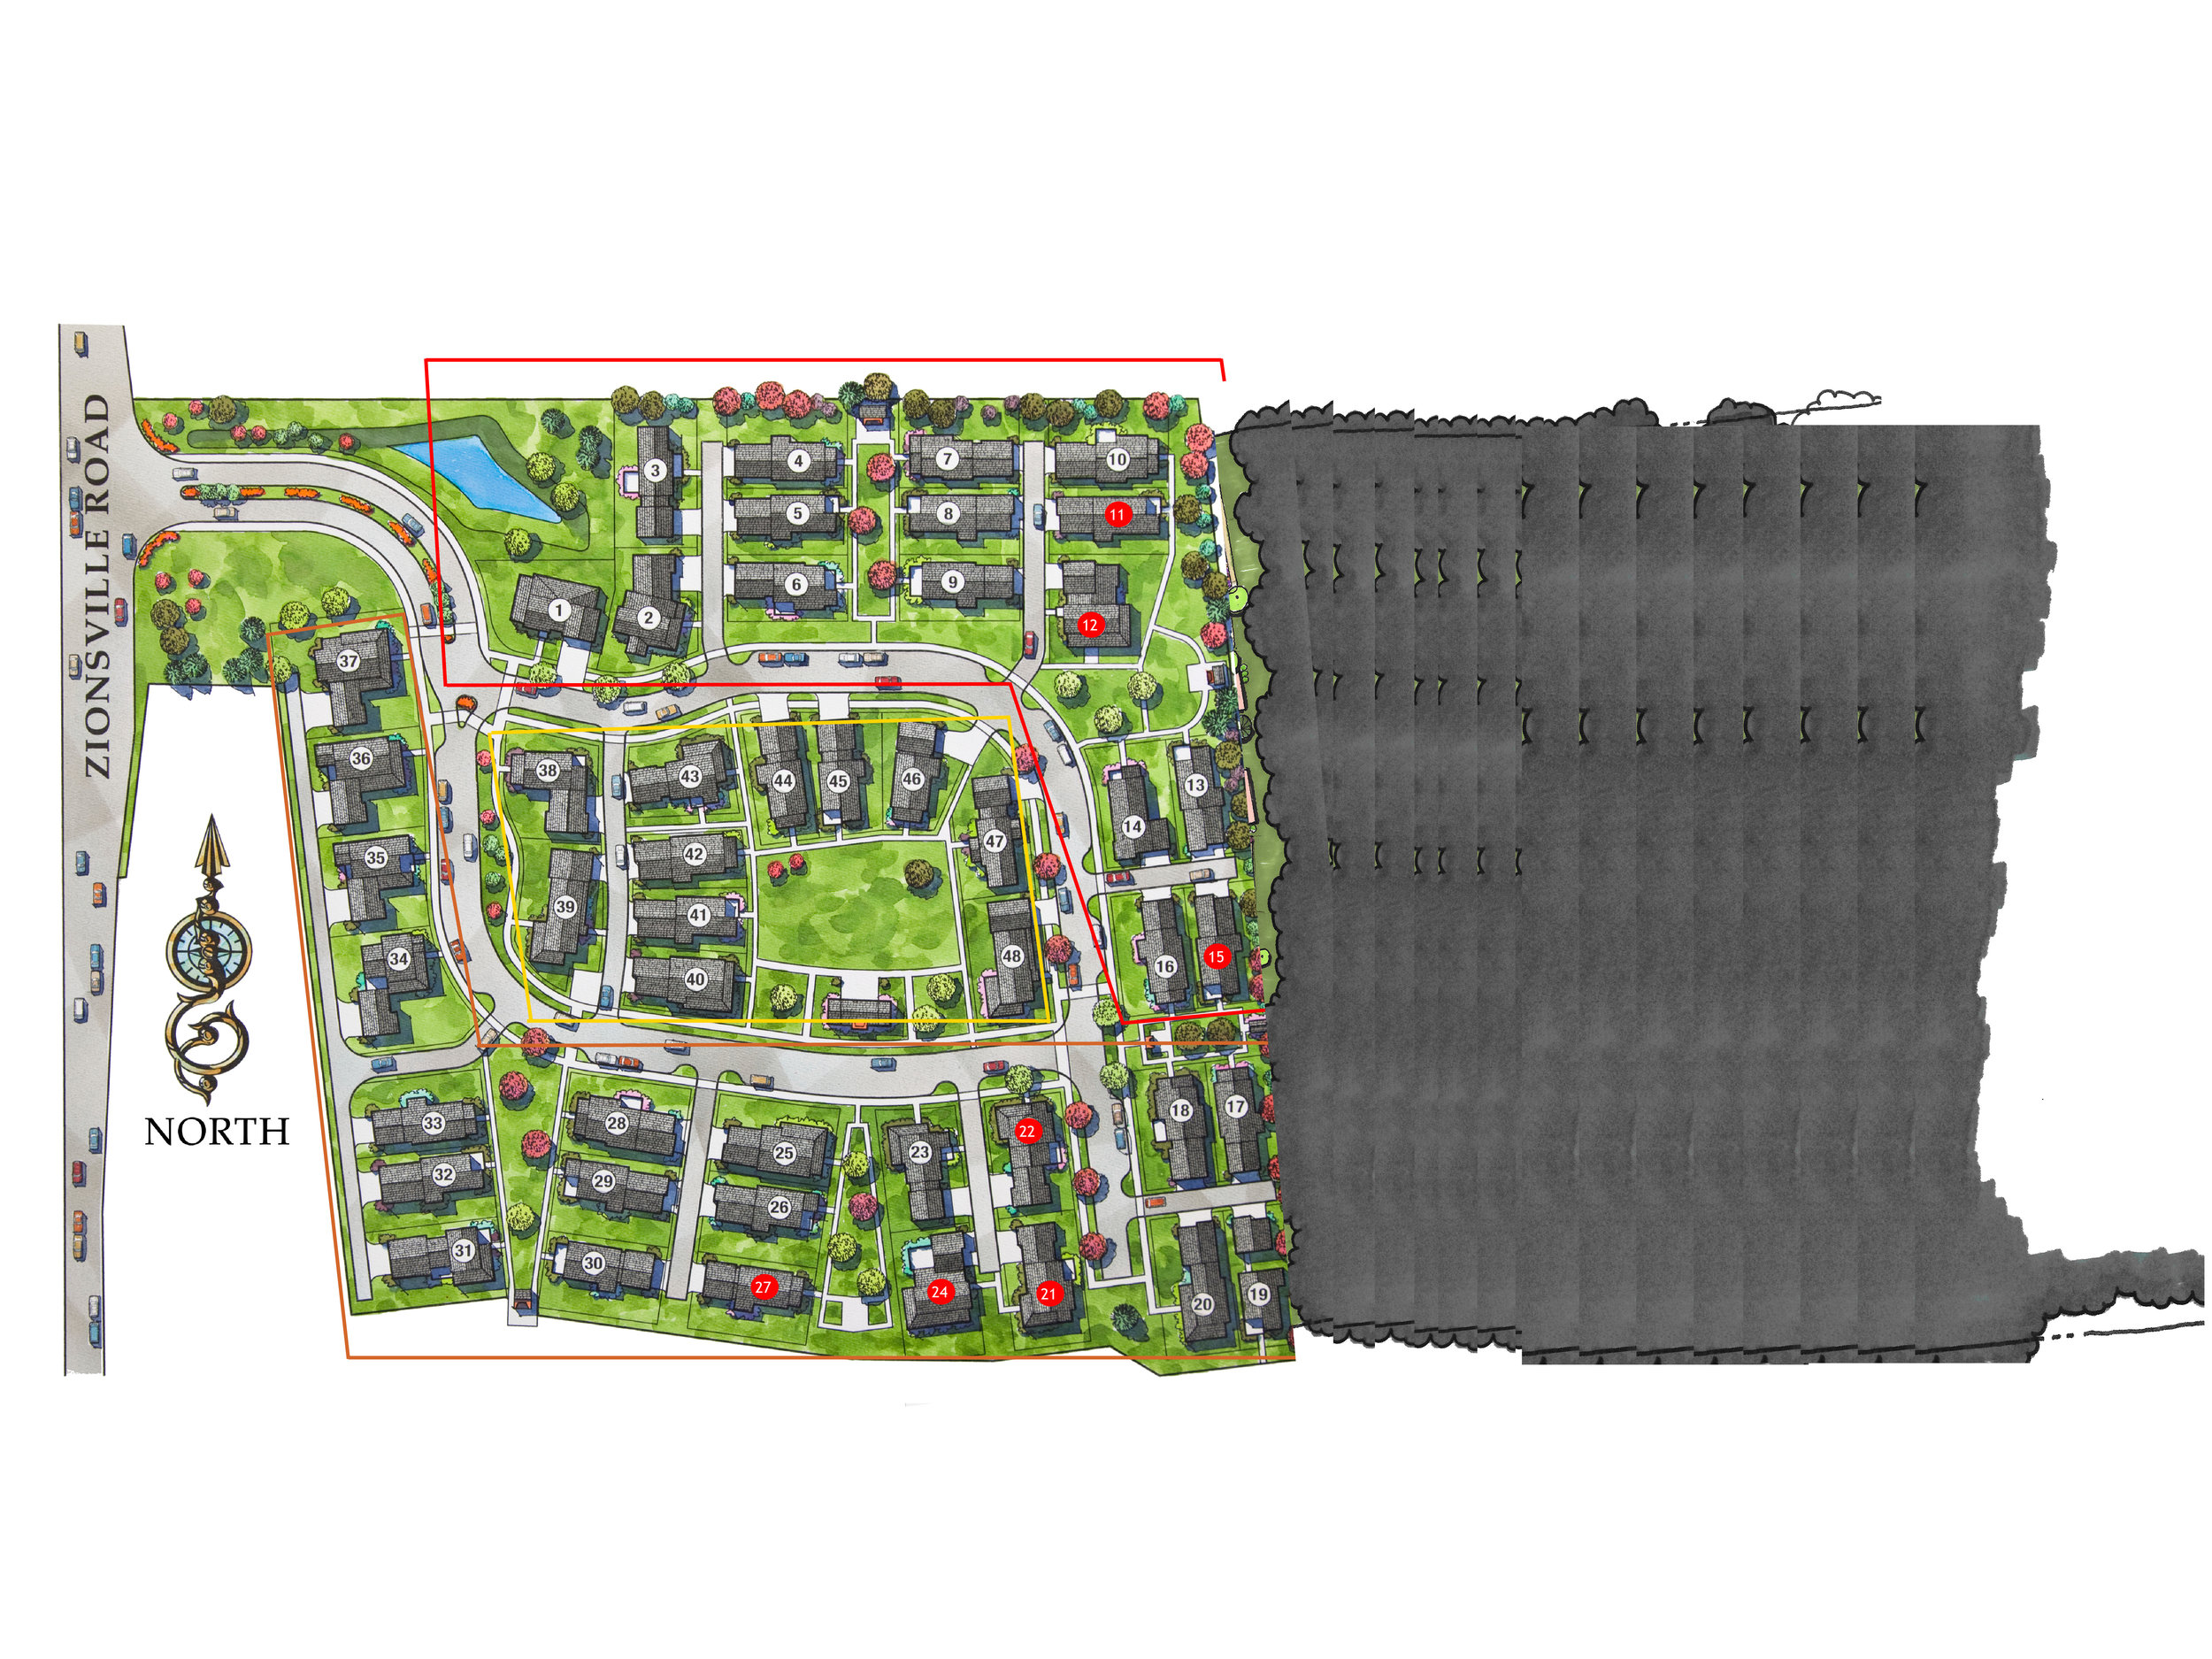 Inglenook of Zionsville Neighborhood Plan